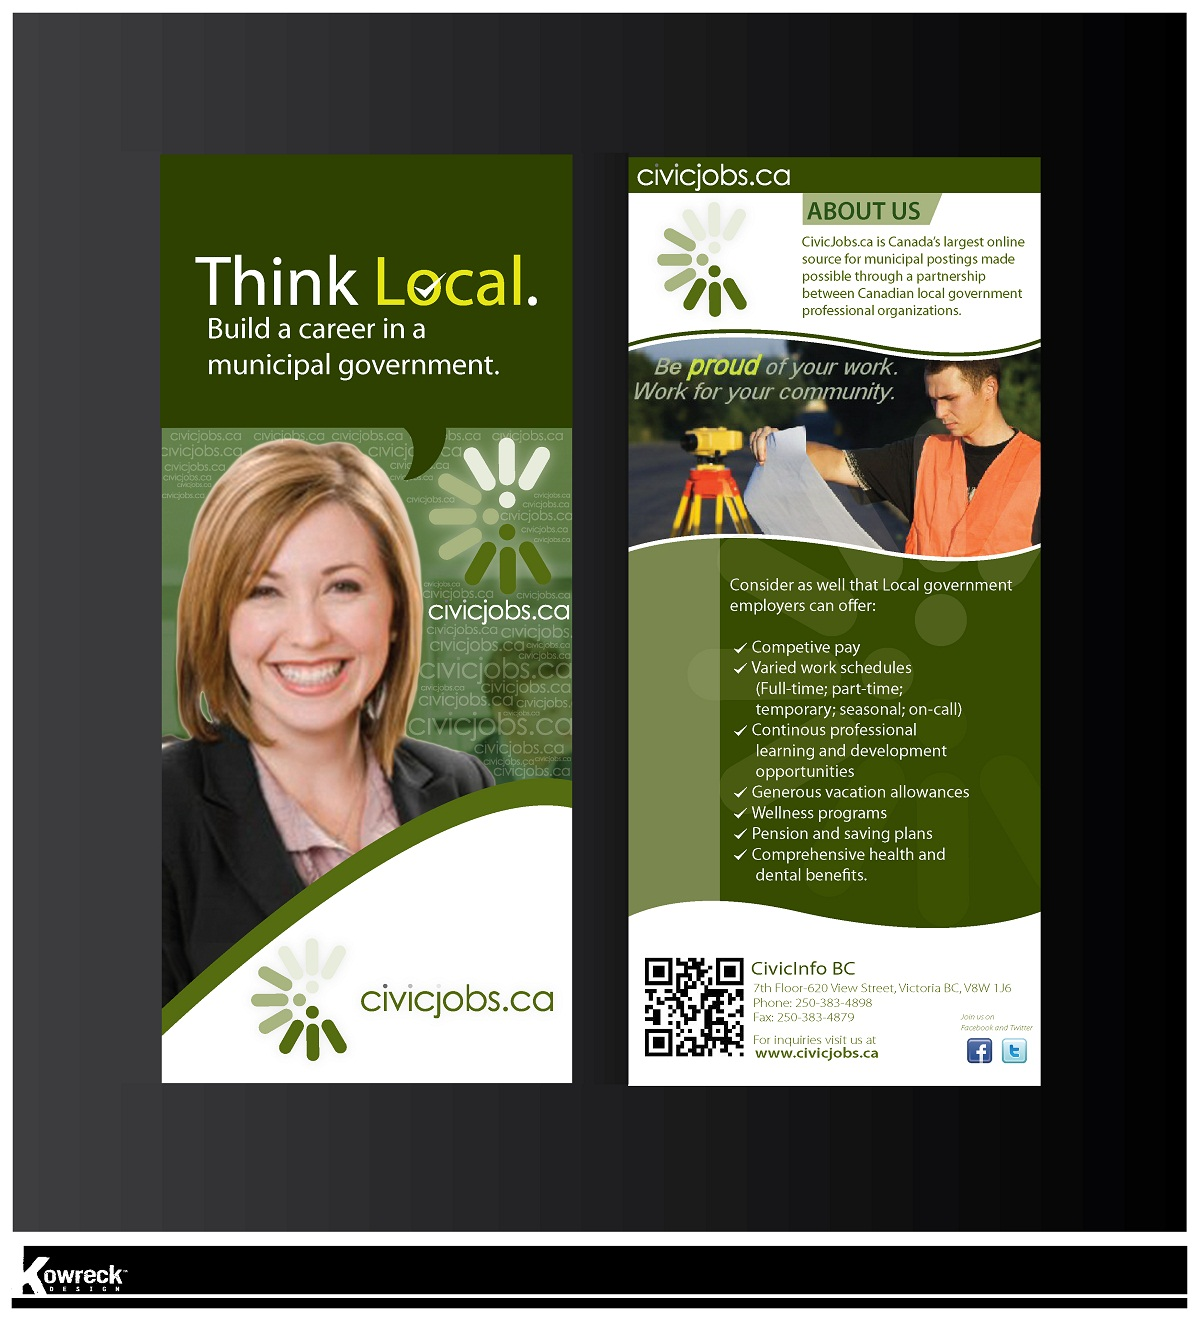 "Print Design by kowreck - Entry No. 56 in the Print Design Contest Print Design Wanted for CivicJobs.ca - 4"" X 9"" rack card, 2 sided, print ready.."